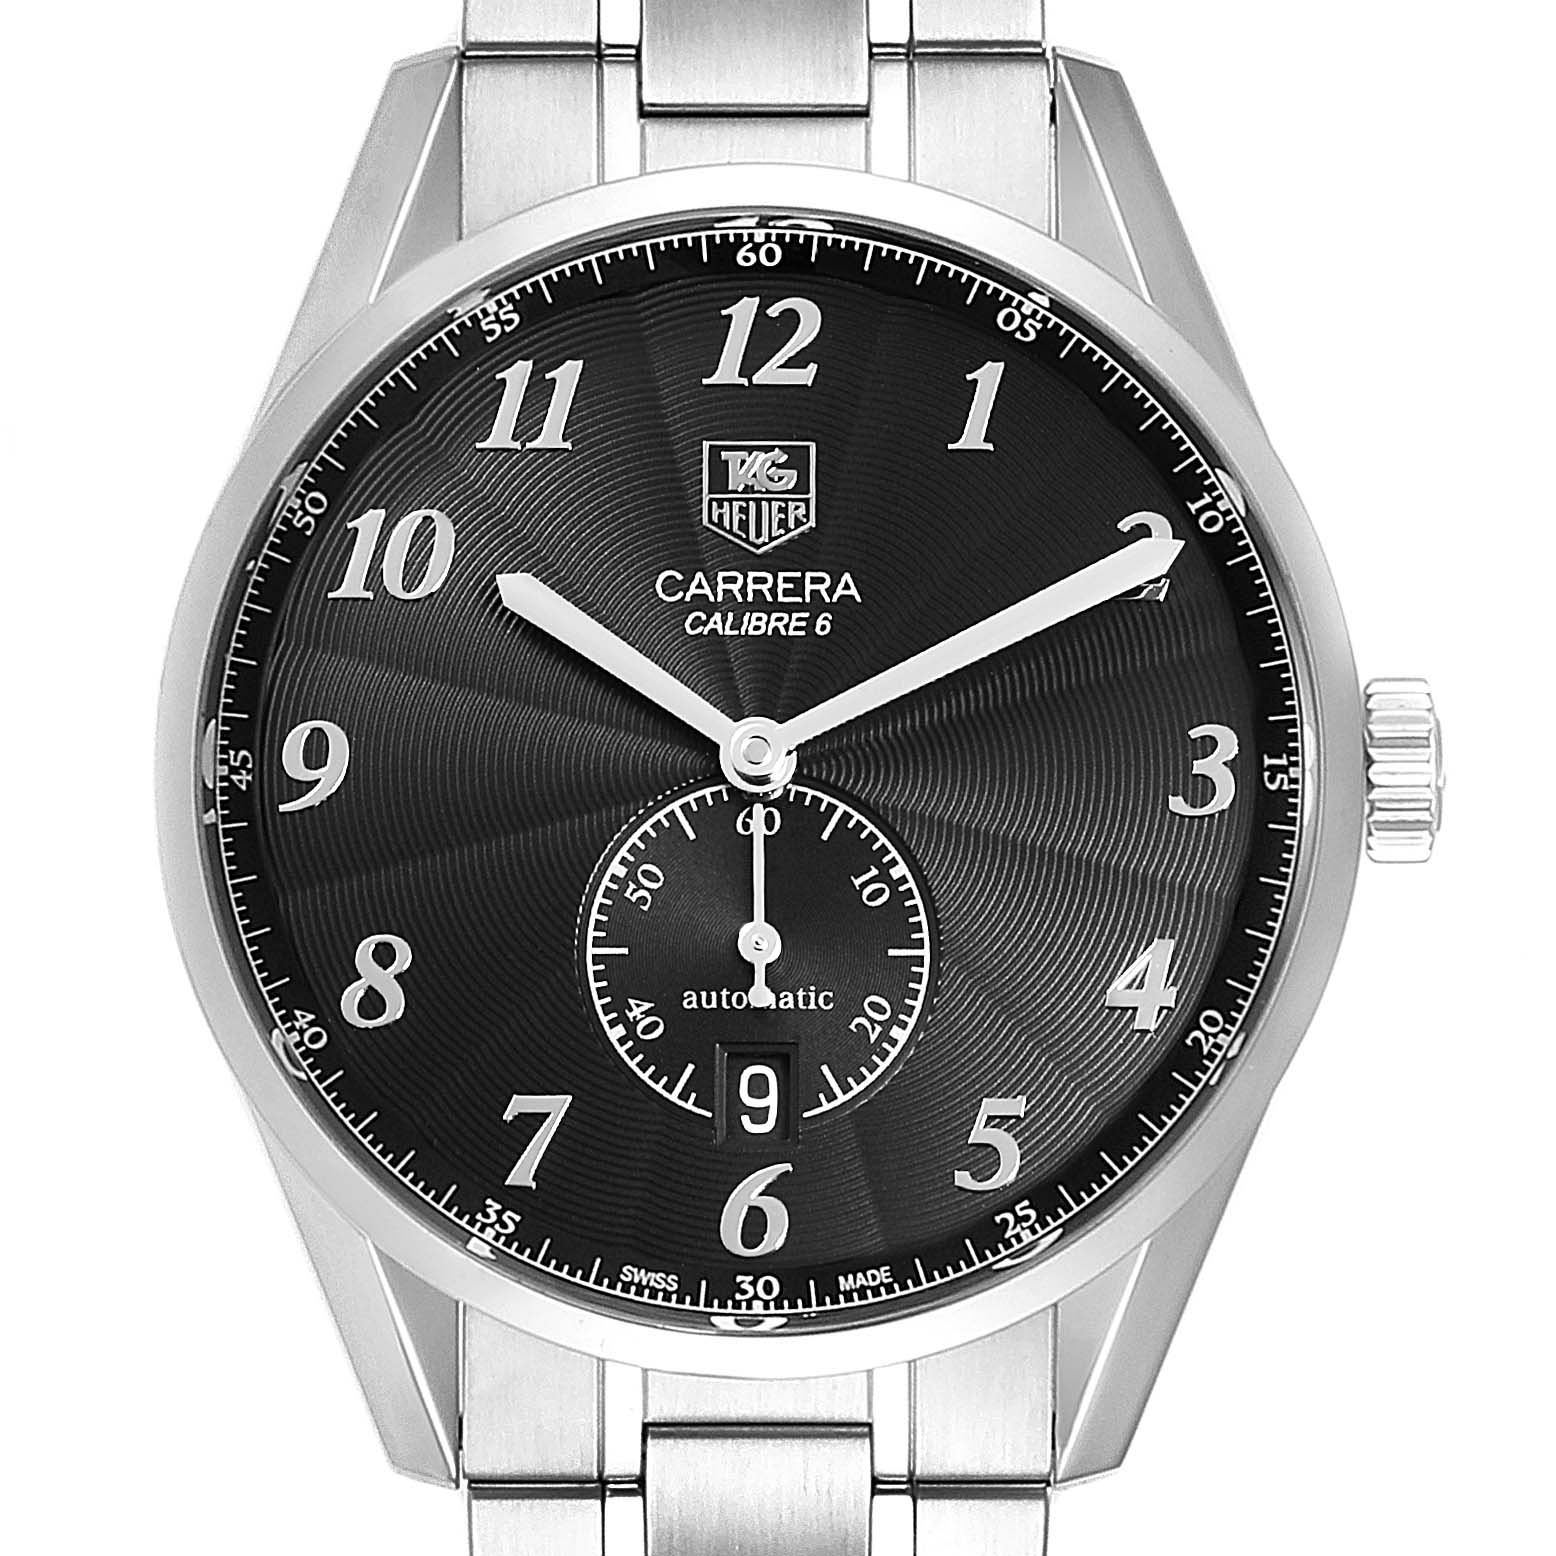 Photo of Tag Heuer Heritage Calibre 6 Black Dial Mens Watch WAS2110